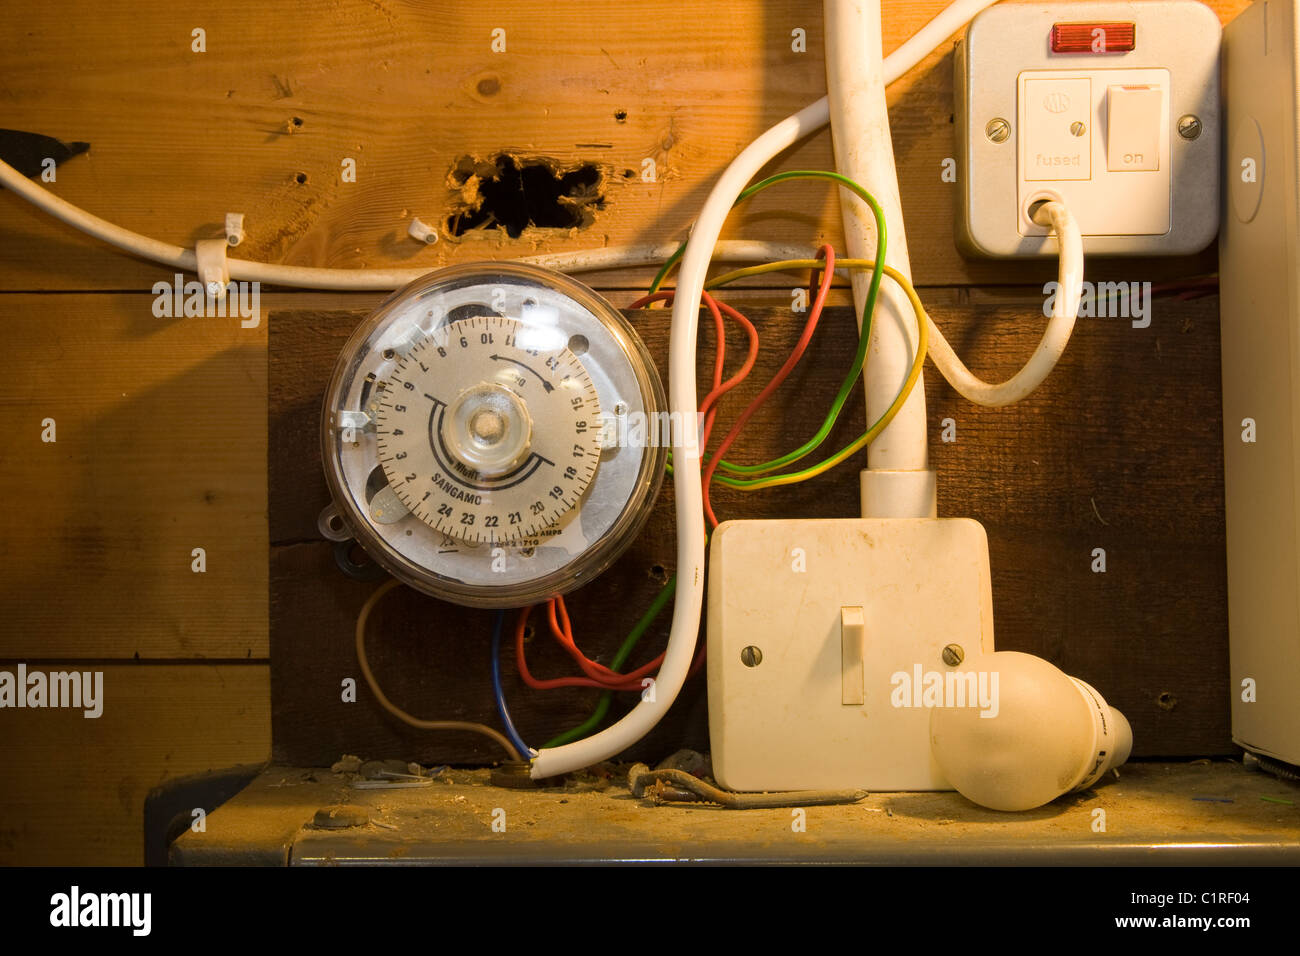 A Poor Electrical Installation Including Sangamo Timer And Switch Wiring Switches